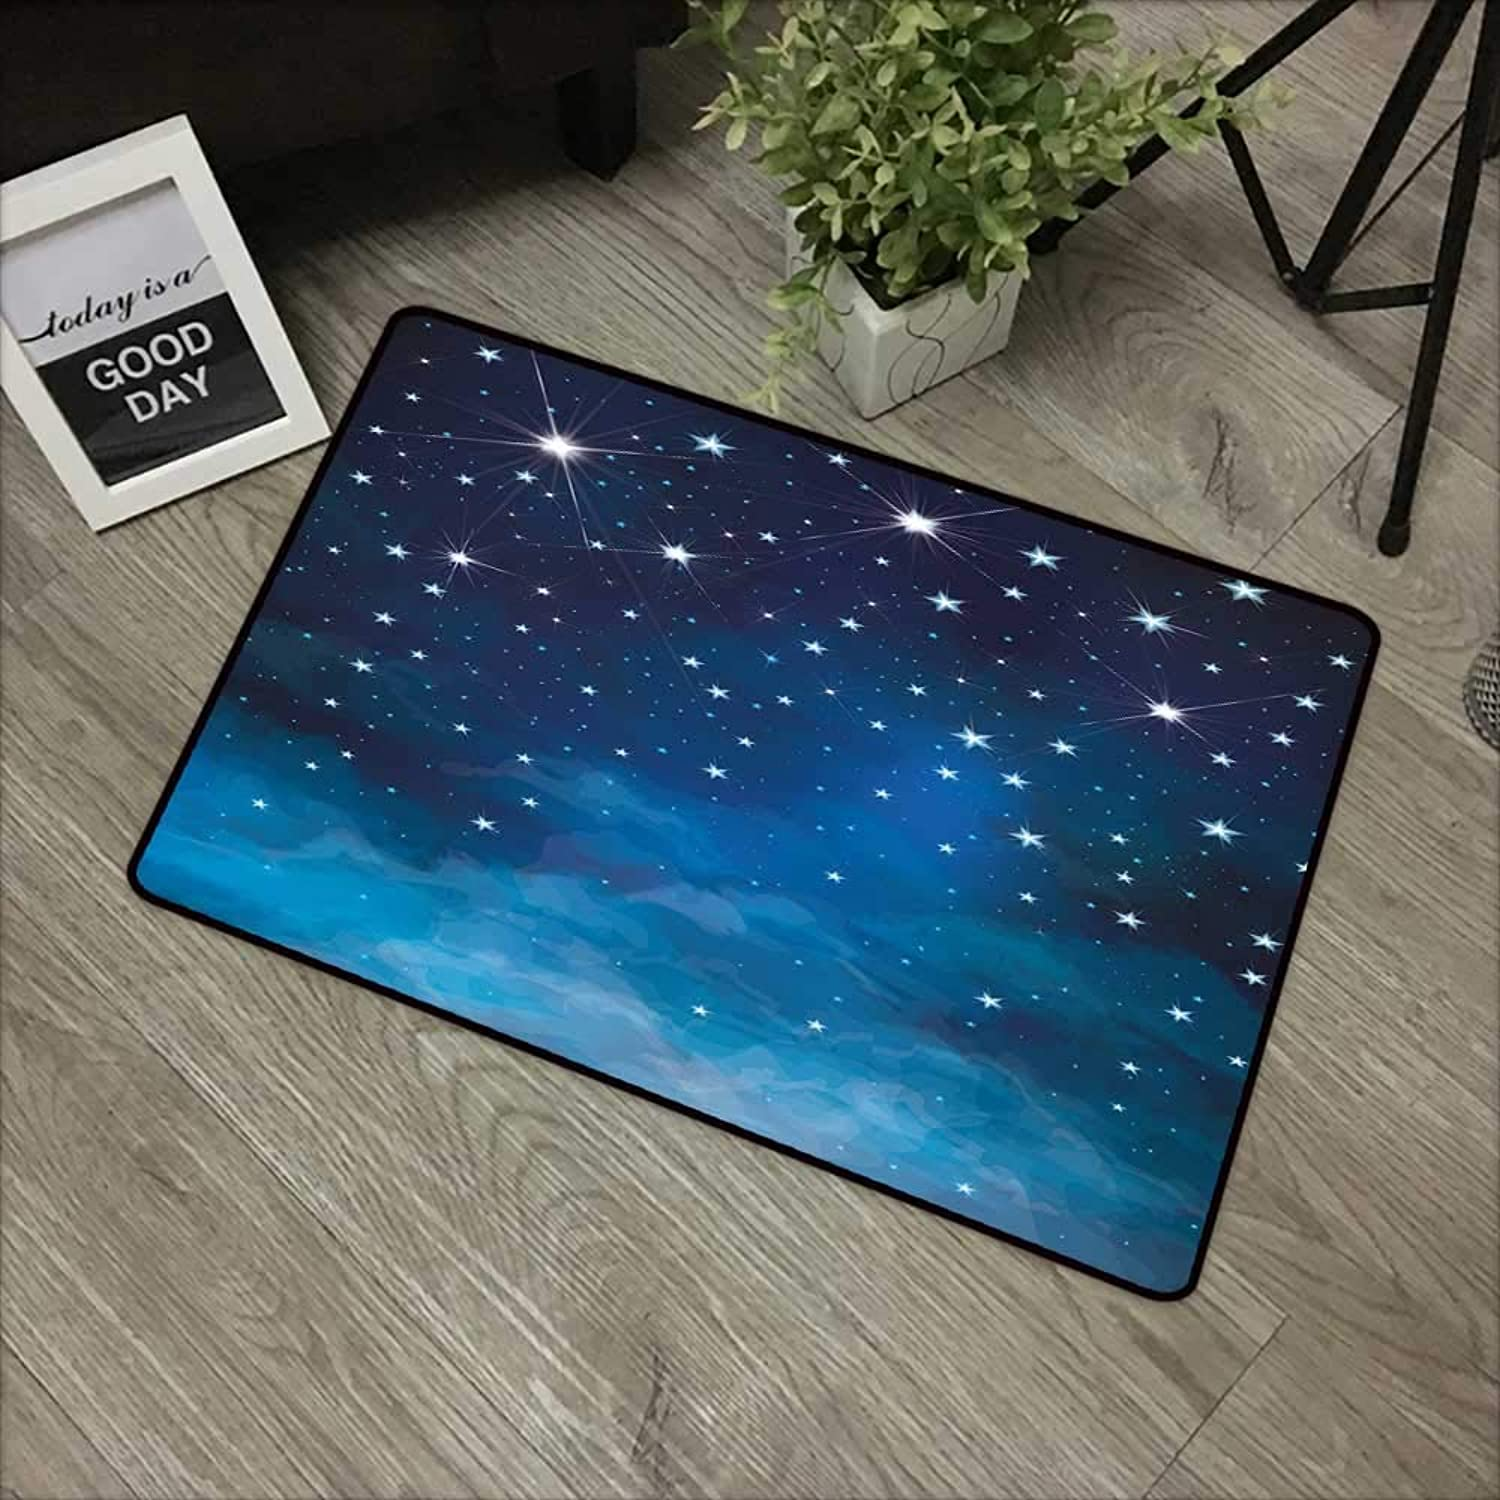 Clear Printed Pattern Door mat W35 x L59 INCH Night,Vibrant Star in Abstract Ombre Style Sky Astronomy Themed Graphic,Light bluee Dark bluee White Easy to Clean, no Deformation, no Fading Non-Slip Door